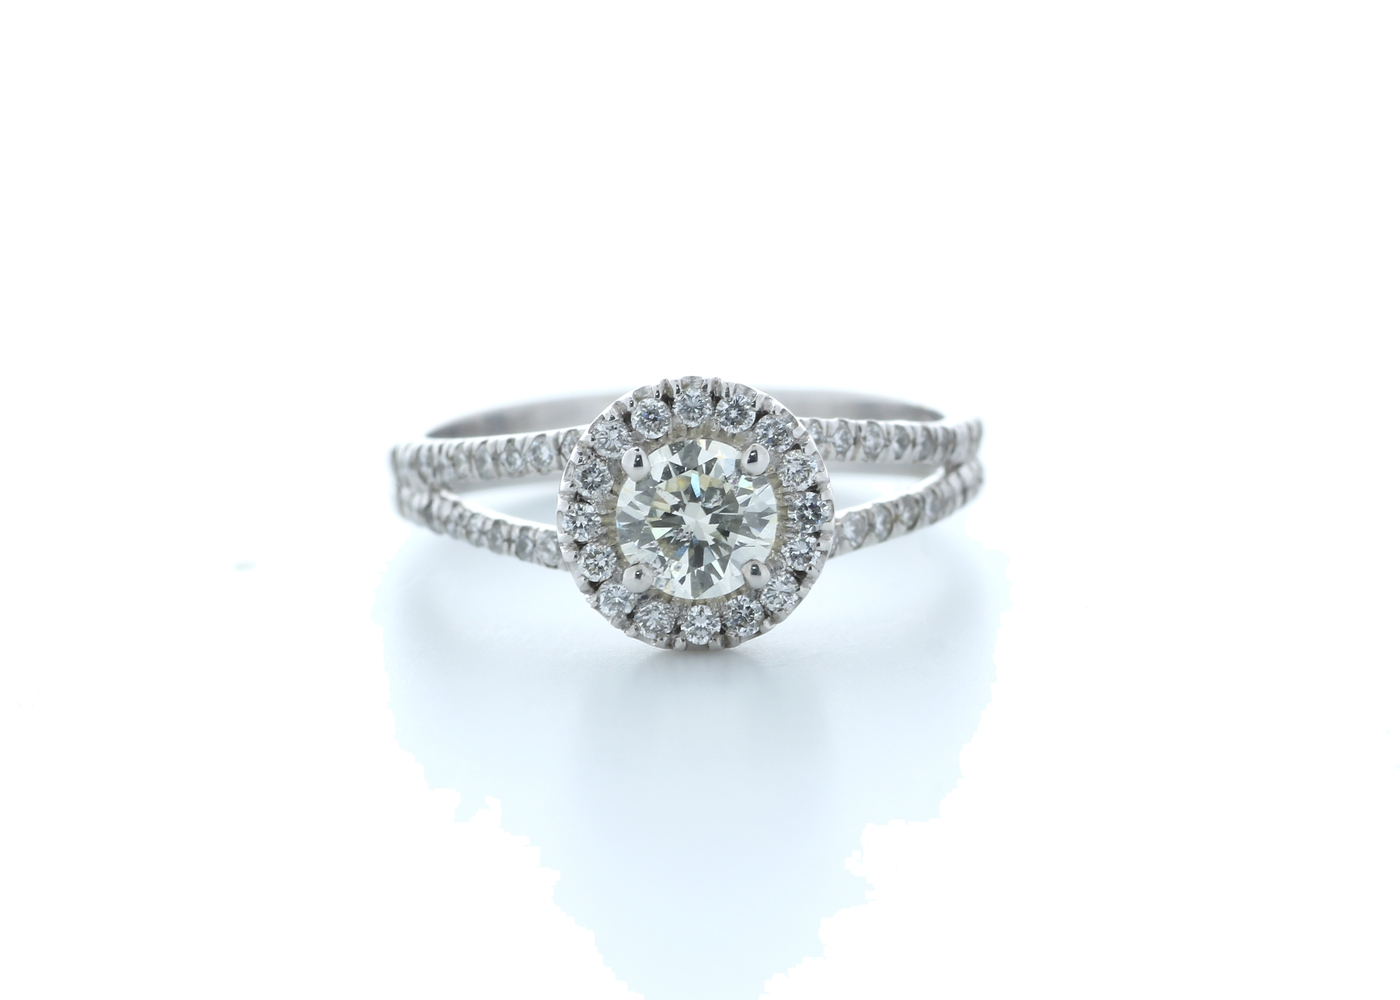 18k White Gold Single Stone With Halo Setting Ring 0.78 (0.45) Carats